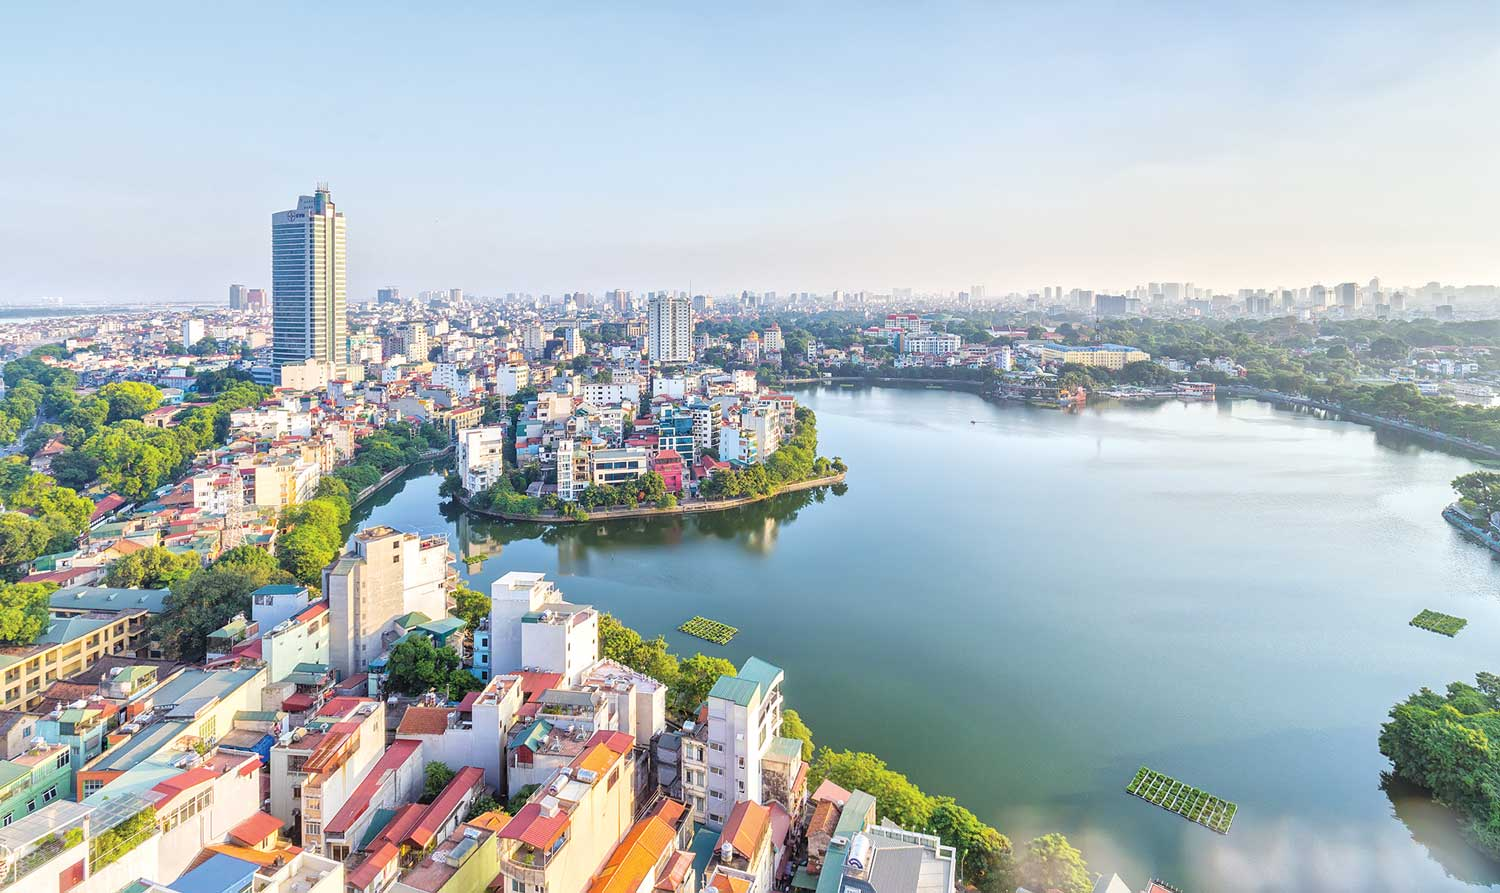 Enterprise Florida to lead trade mission to Hanoi